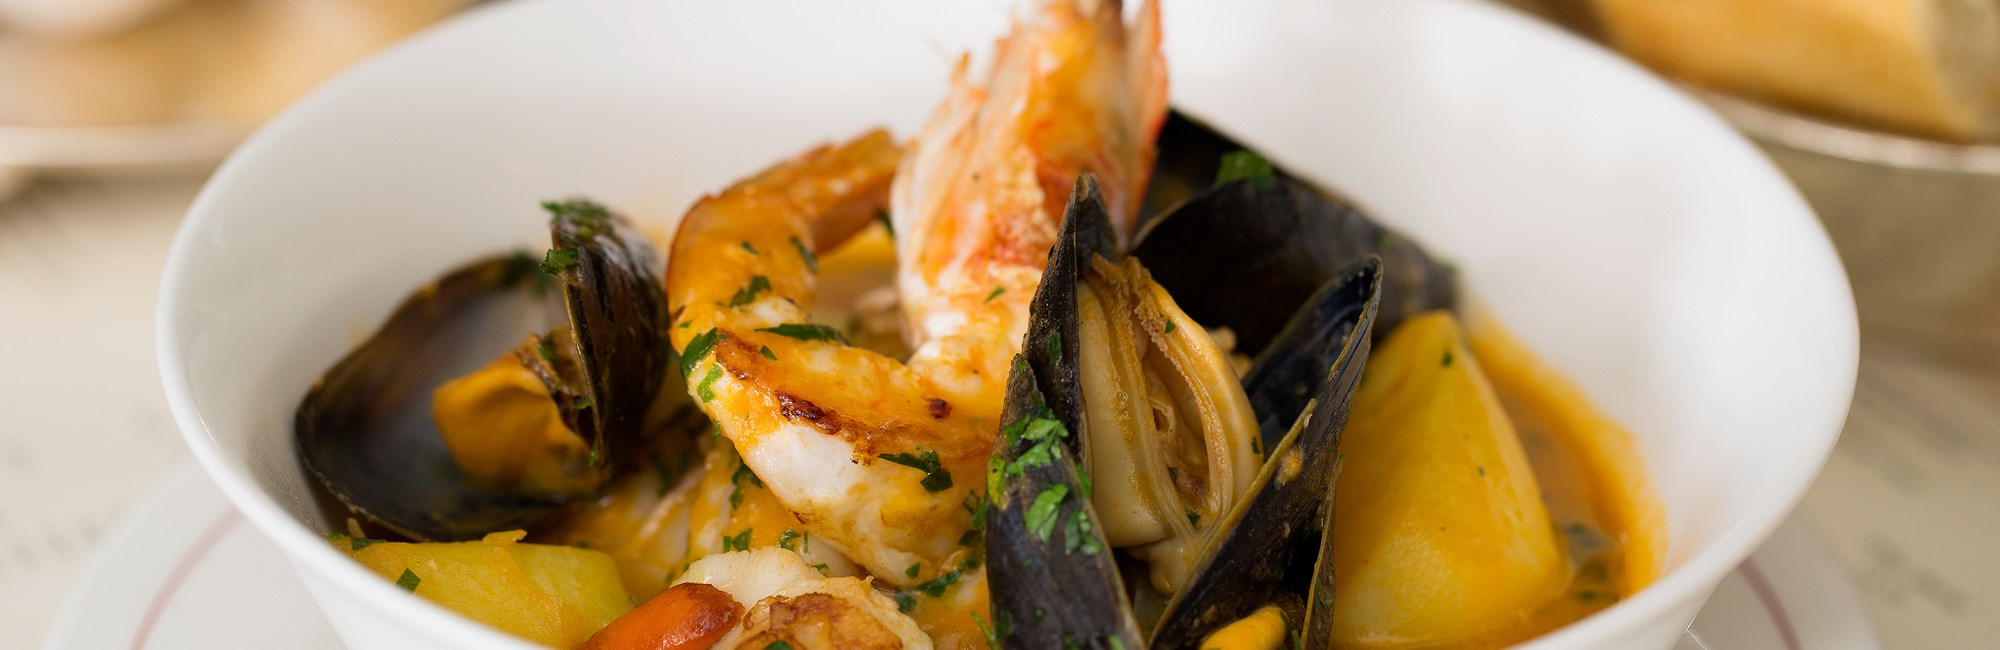 j sheekey atlantic bar cornish fish stew by john carey